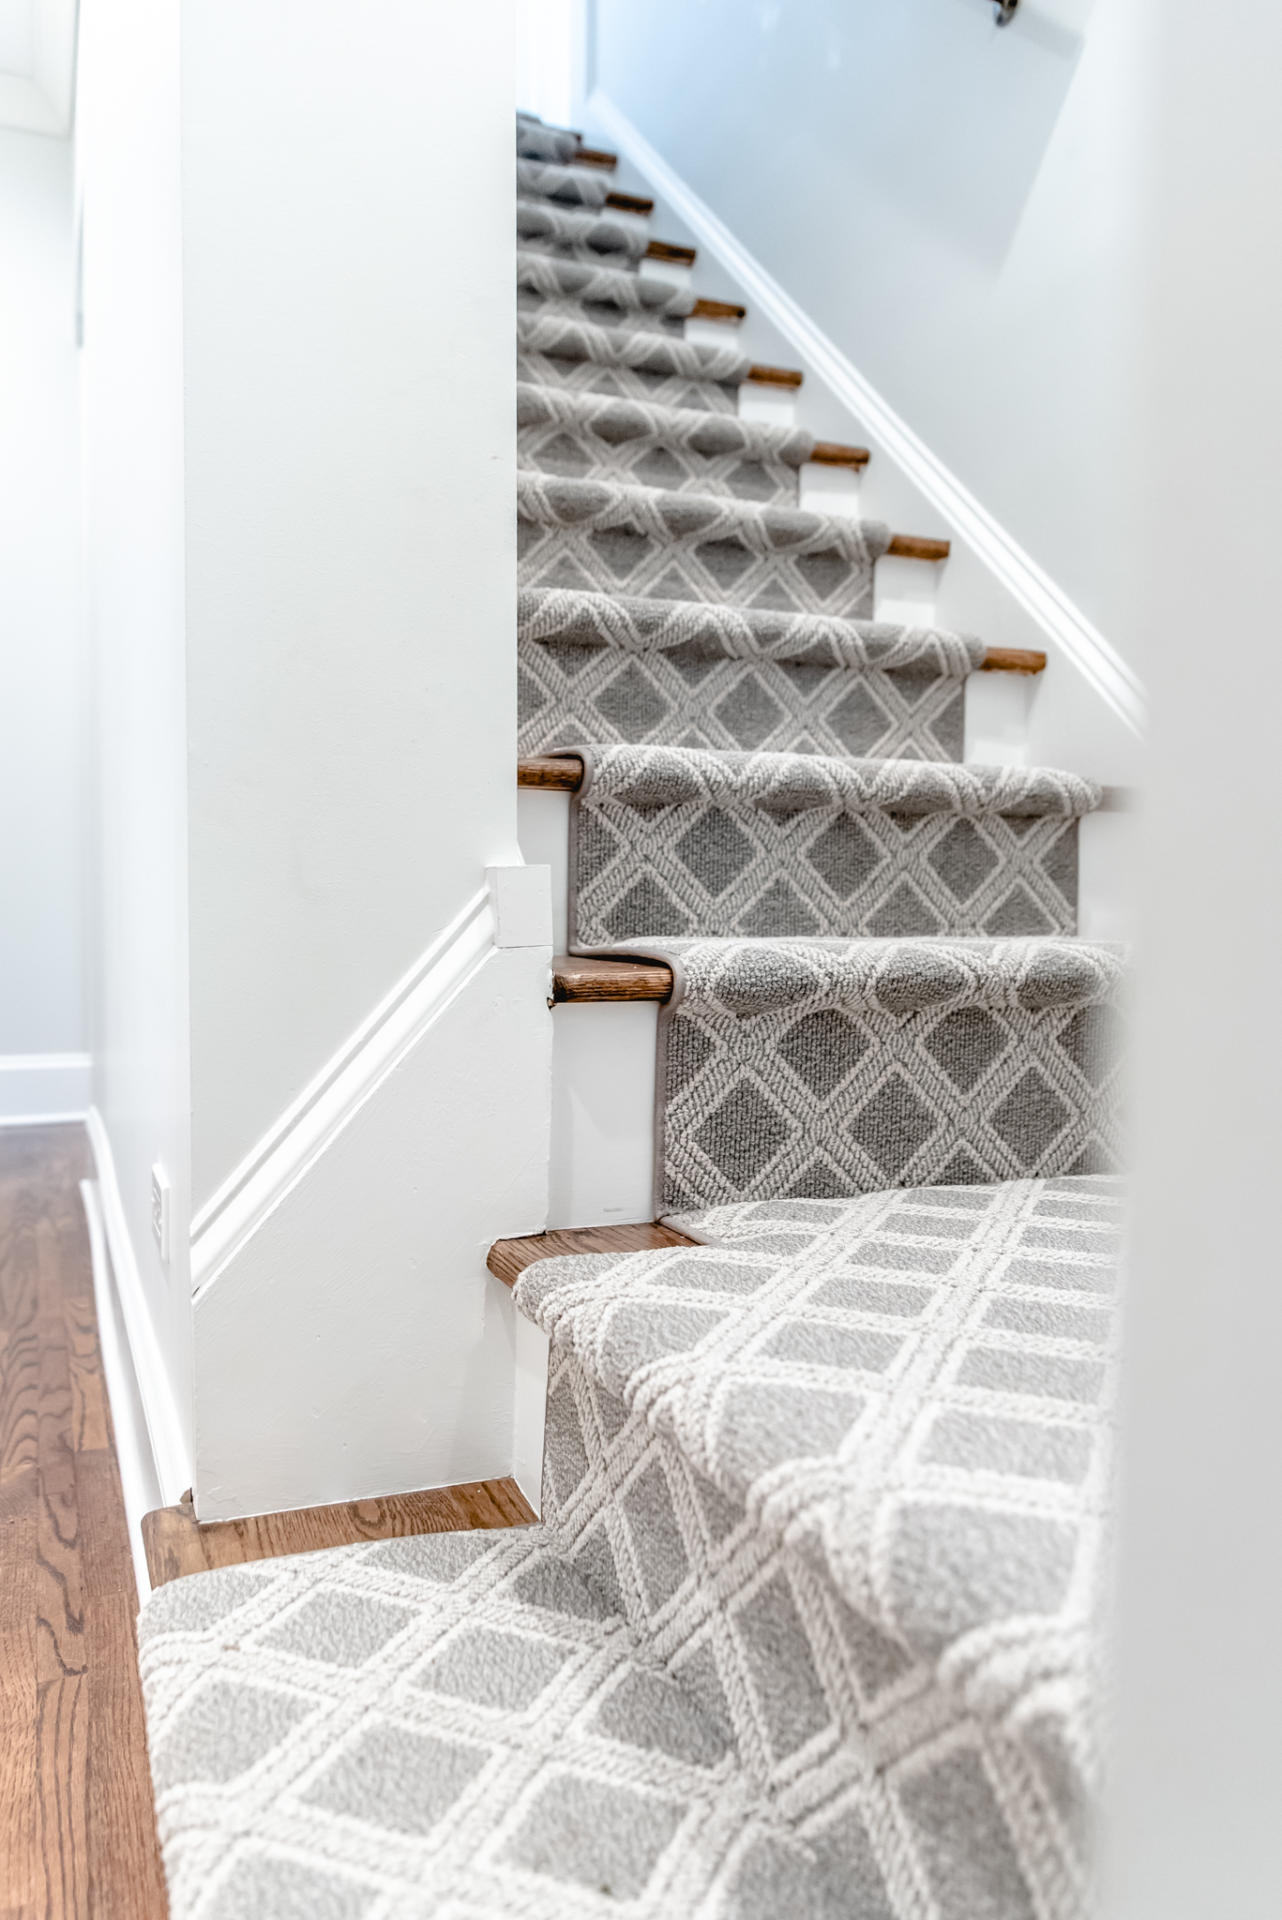 Stair Carpet Gain Inspiration And View Stair Carpet Projects   Grey Patterned Carpet For Stairs   Fitting Loop Pile Carpet   Room Matching Str*P   Middle Open Concept   Runners   Living Room